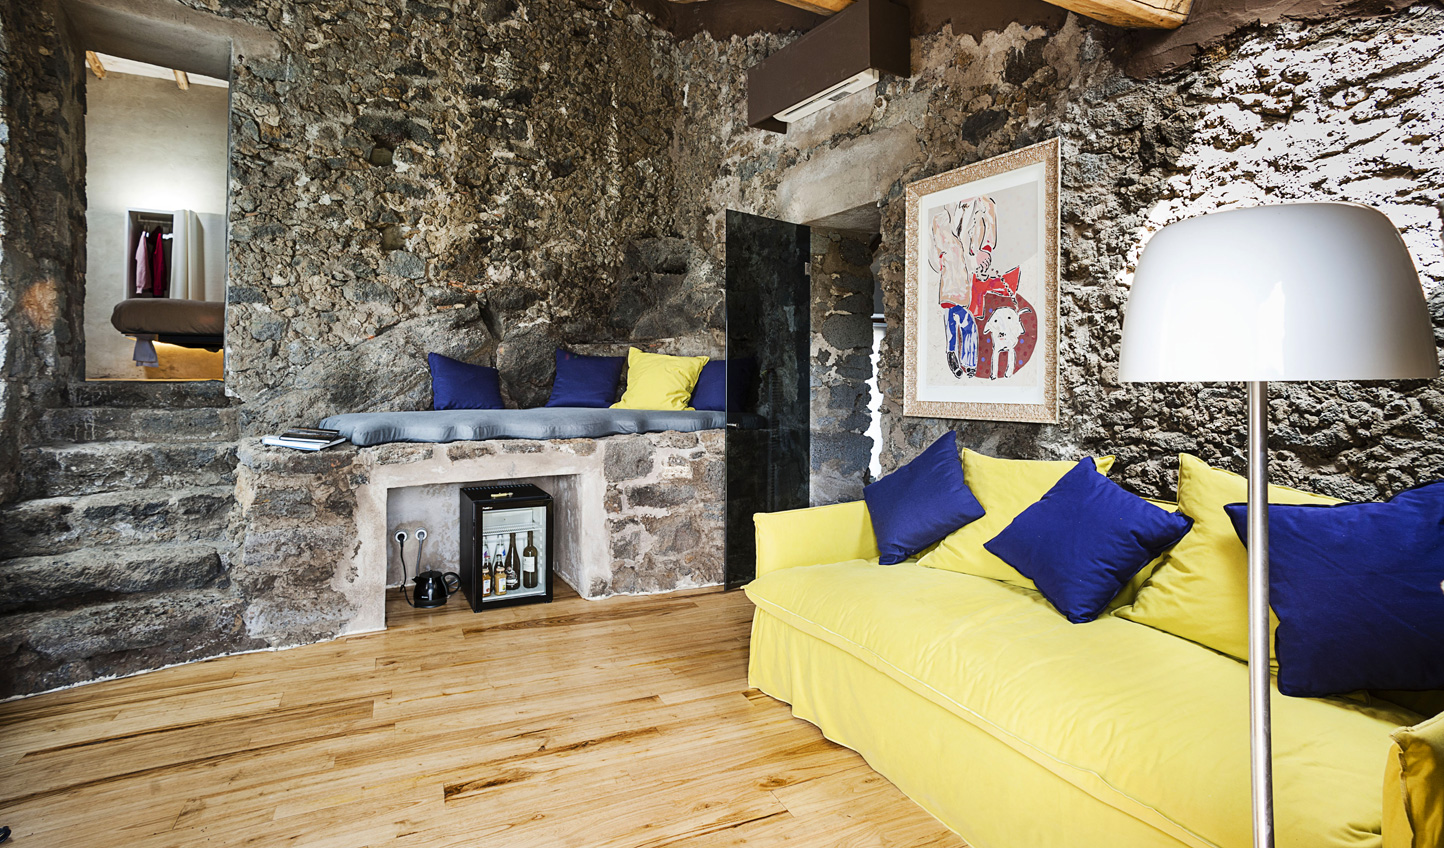 Lava-stone rooms come with splashes of colour.